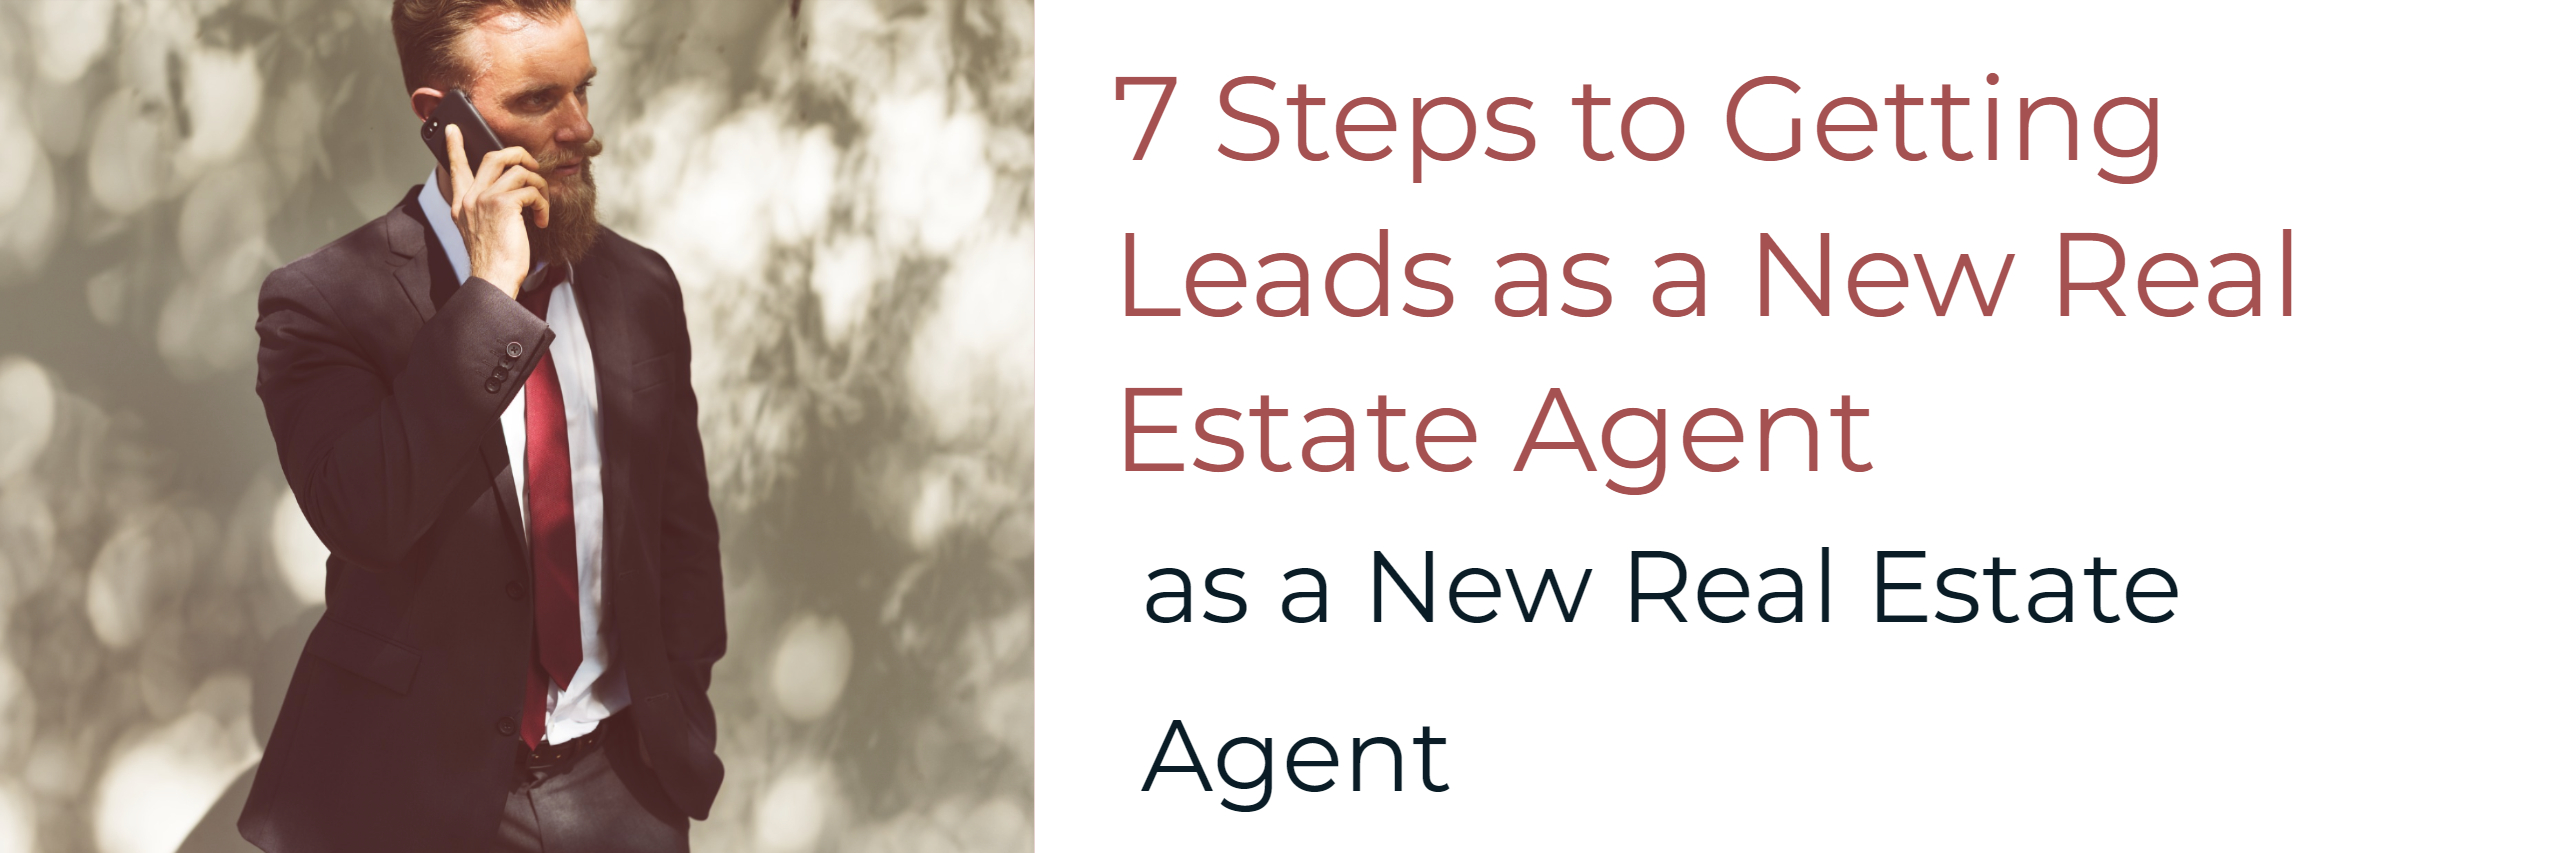 7 Steps to Getting Leads as a New Real Estate Agent (1)